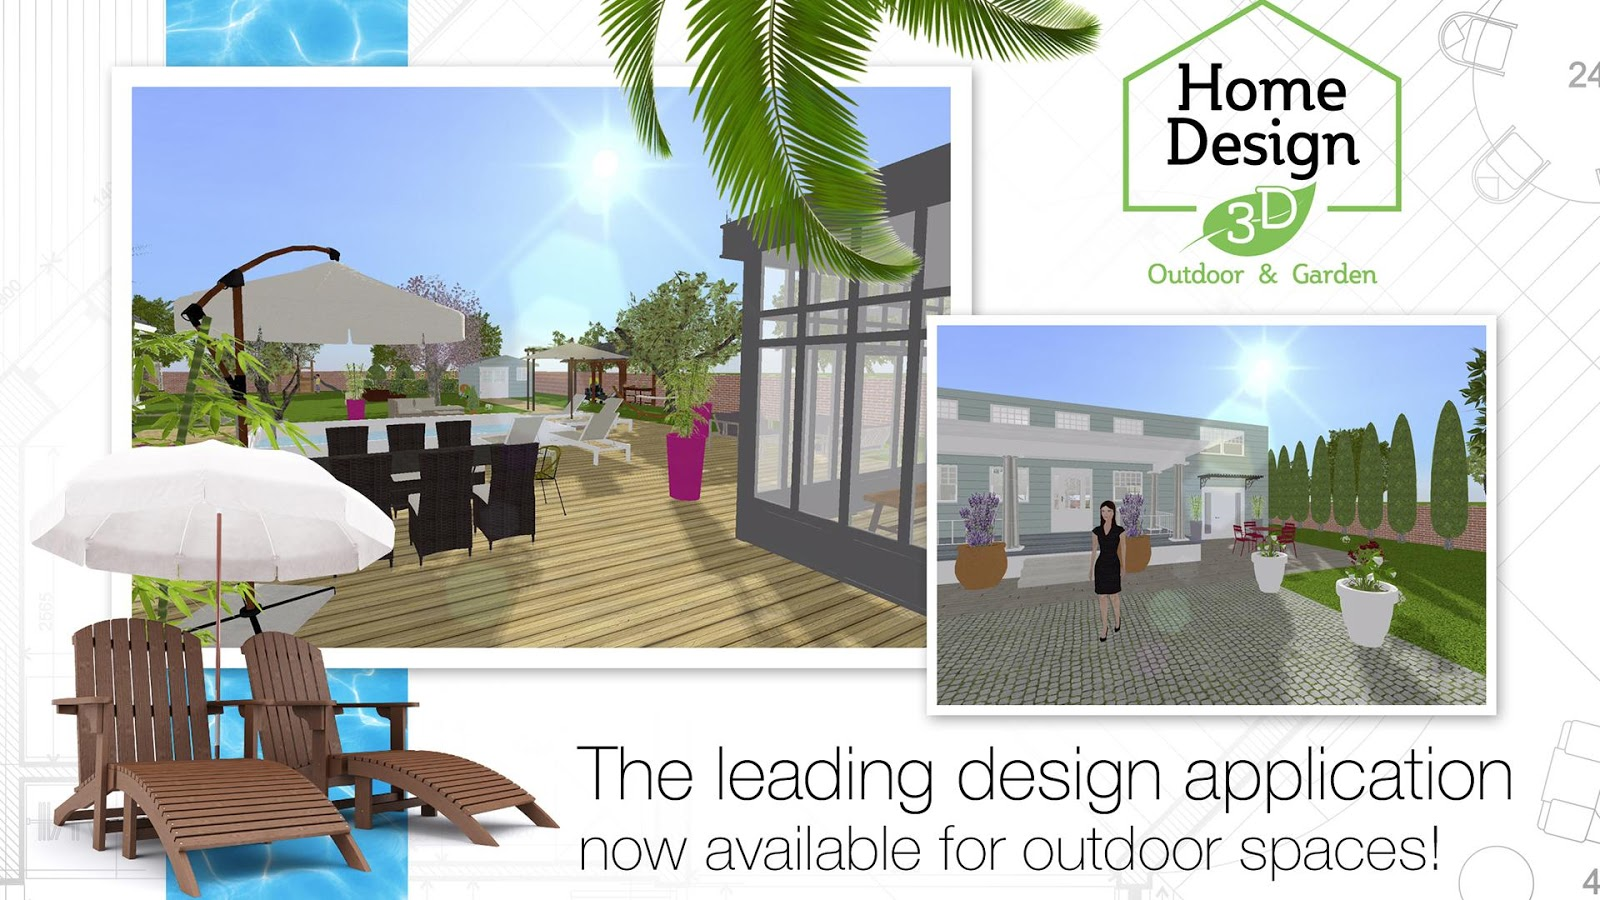 Home Design D OutdoorGarden Android Apps On Google Play - Home design 3d